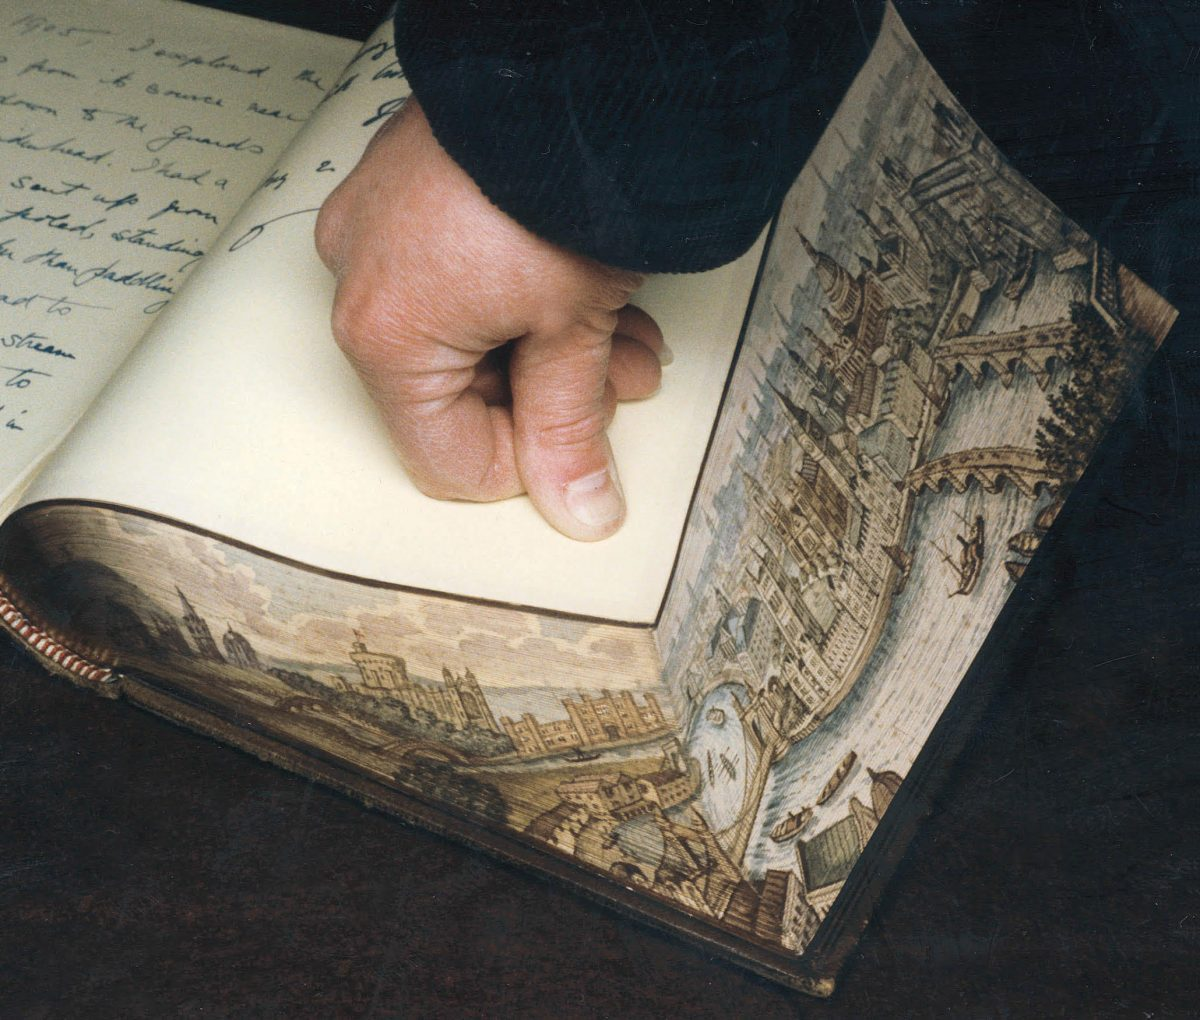 Book with painting on the edge